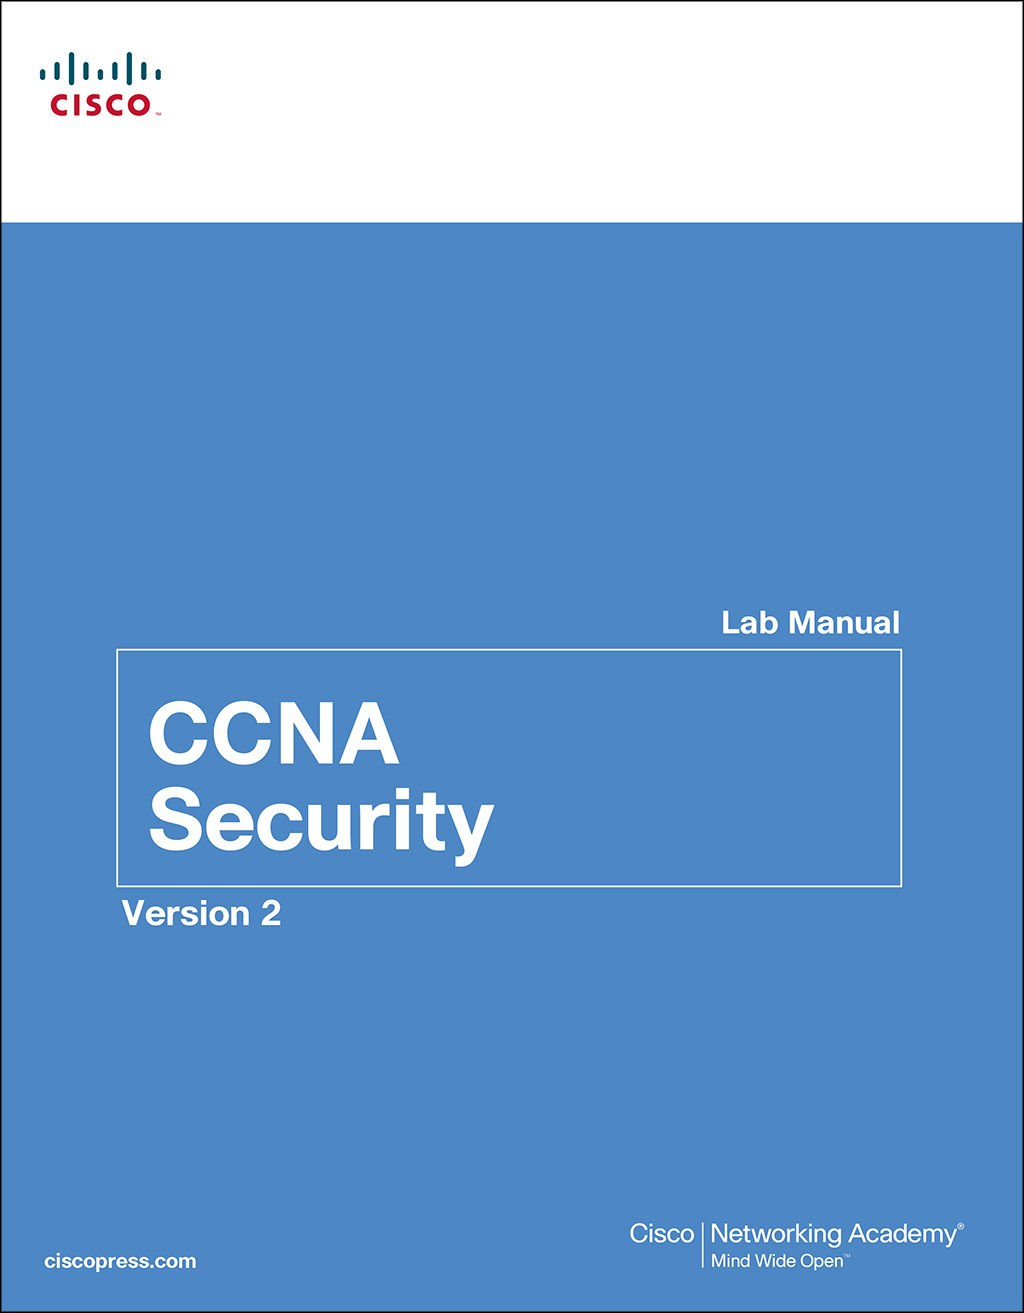 CCNA Security Lab Manual Version 2